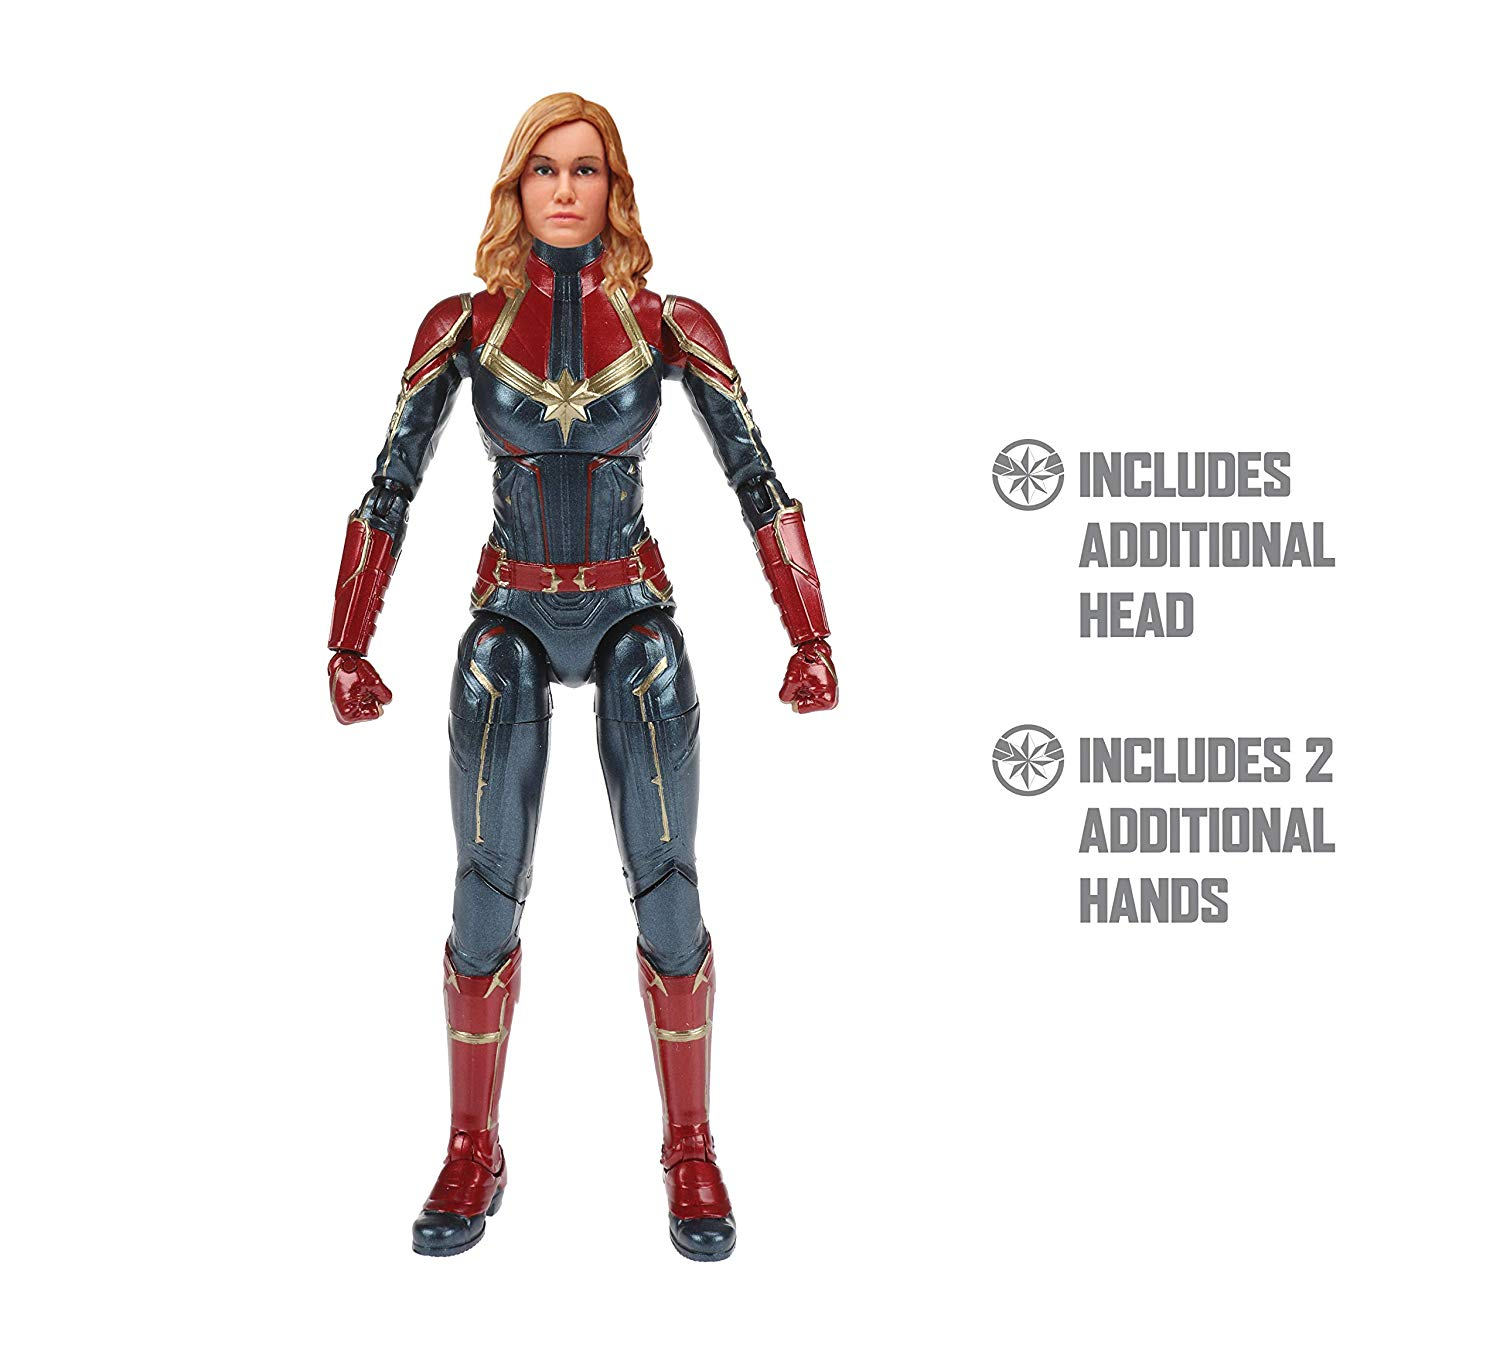 better look at the marvel legends - captain marvel 6-inch figures